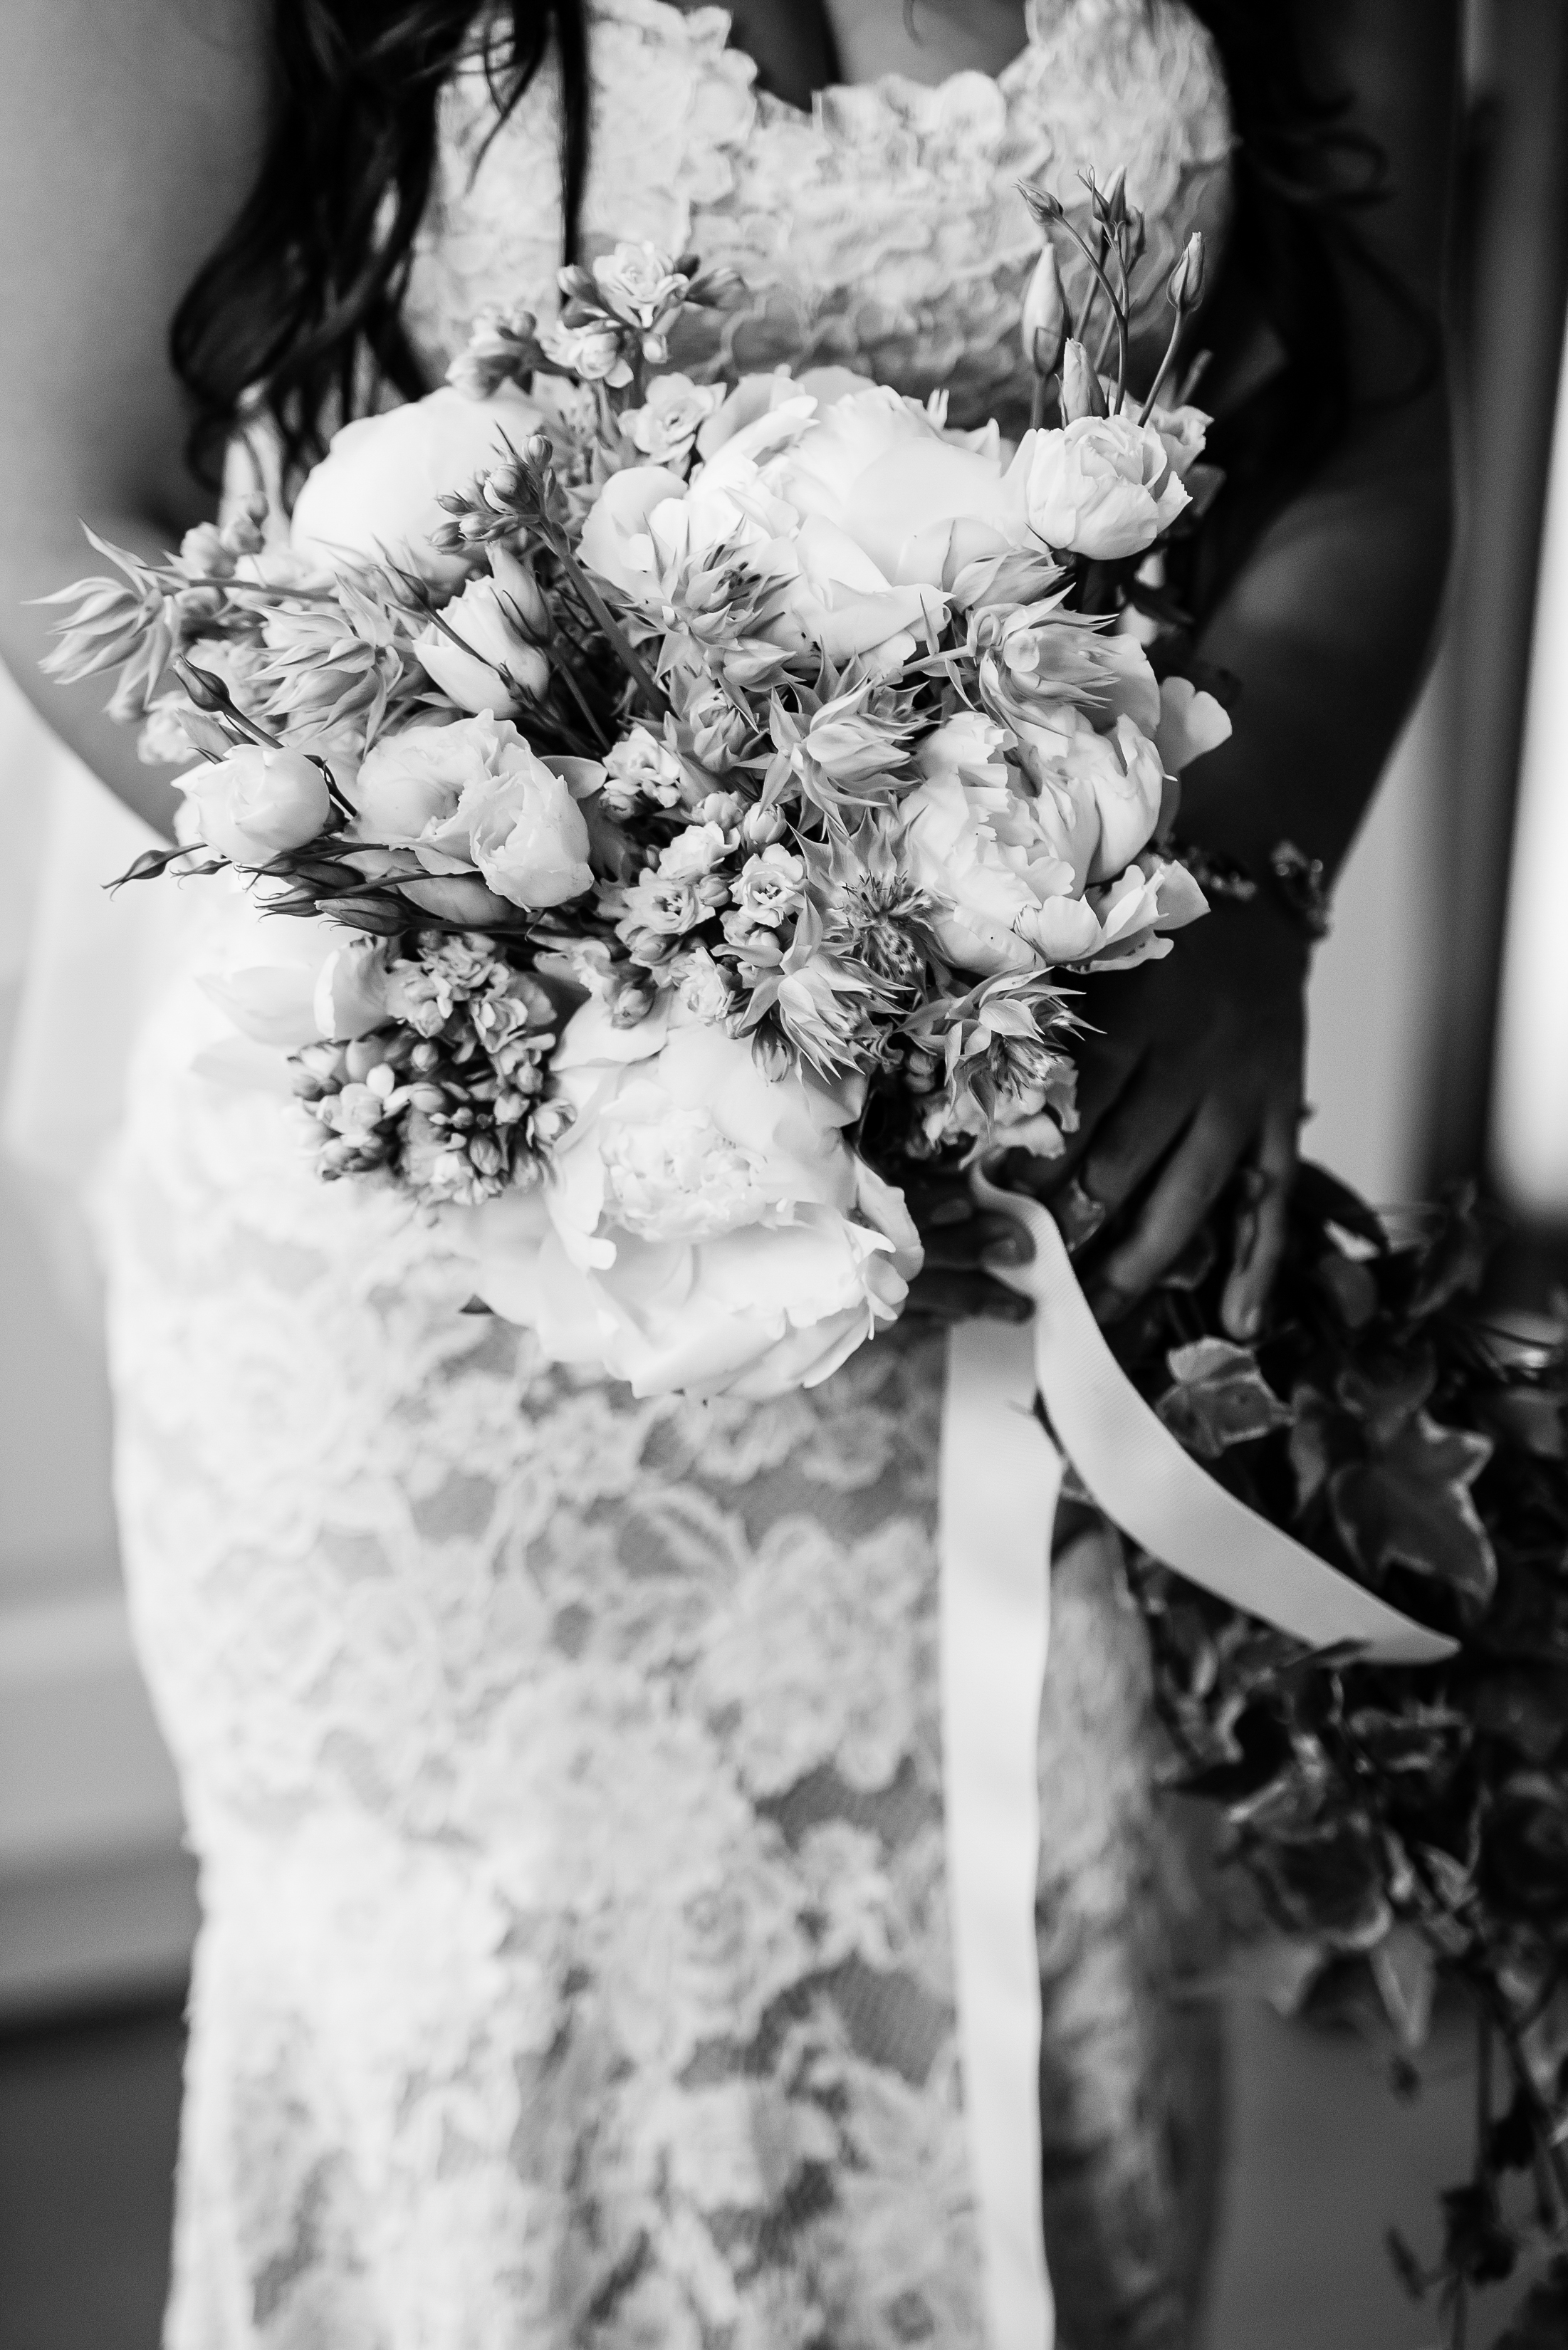 Stefy Hilmer Photography - bridal bouquet and bride before the ceremony.jpg